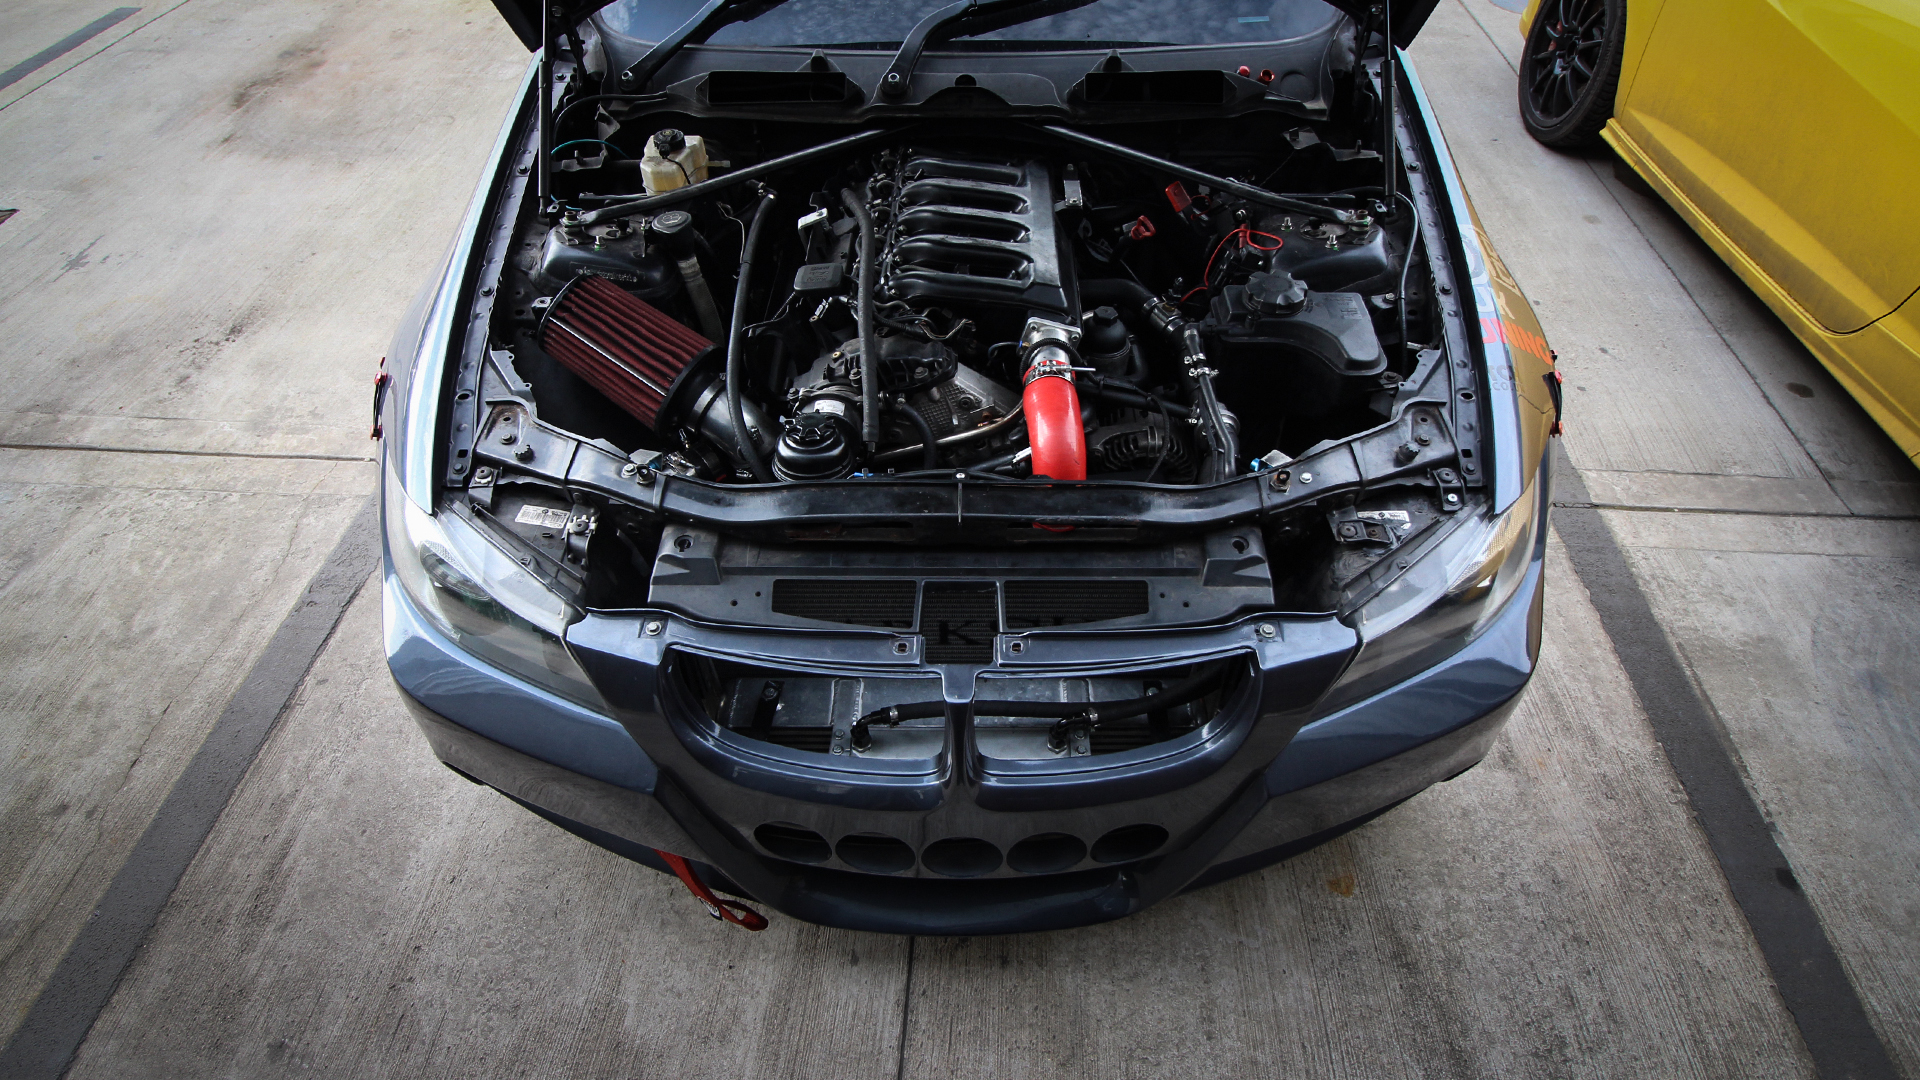 Tuning the BMW M57 Engine - Darkside Developments